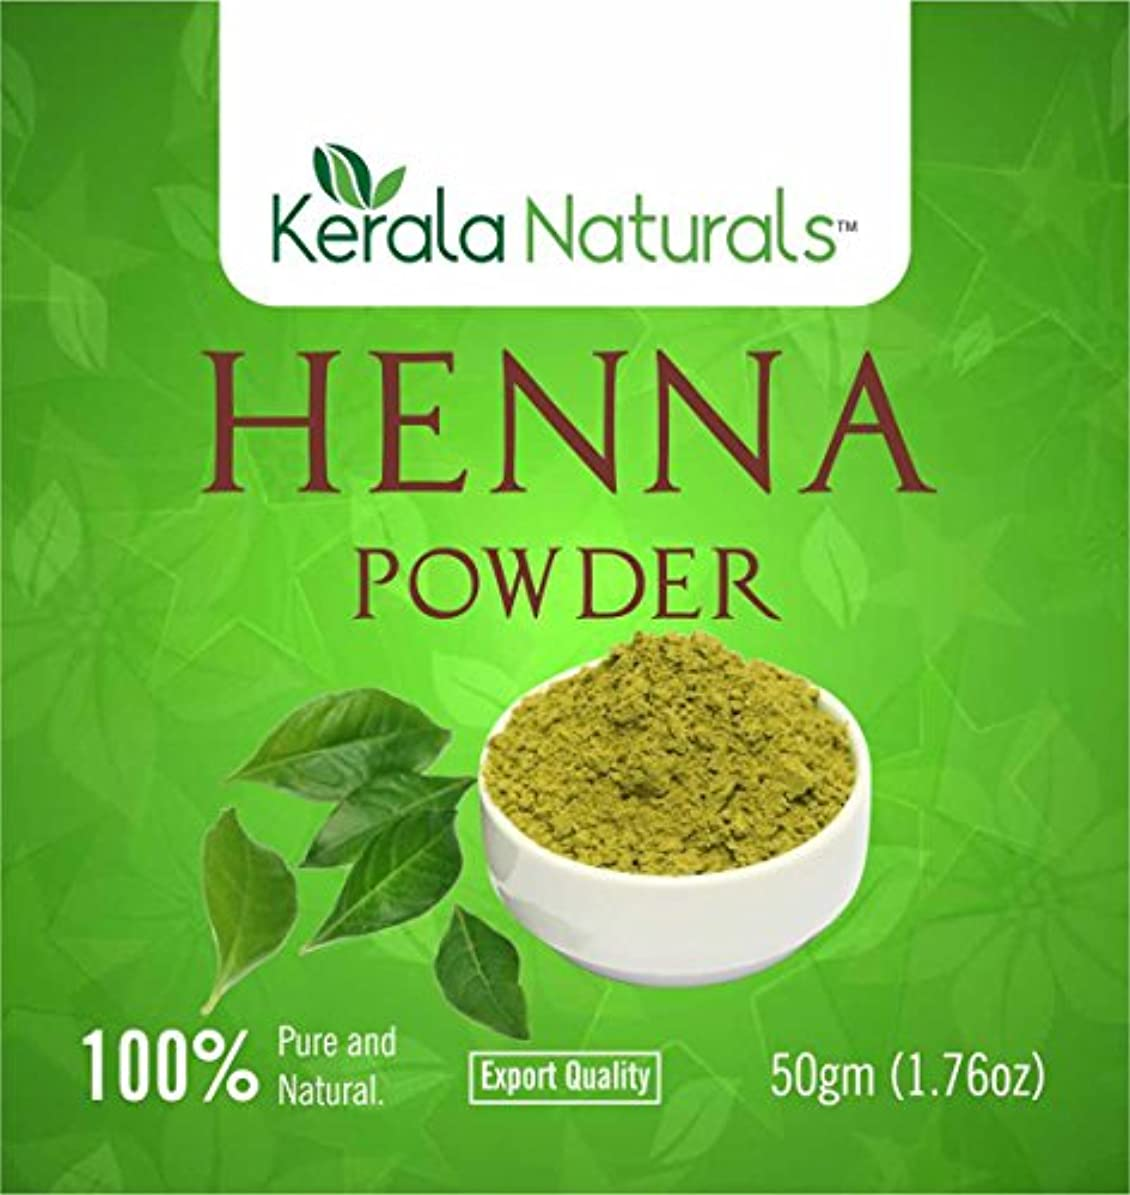 モザイク雪ボトルネック100% Pure Herbal Henna powder- Fresh Stock